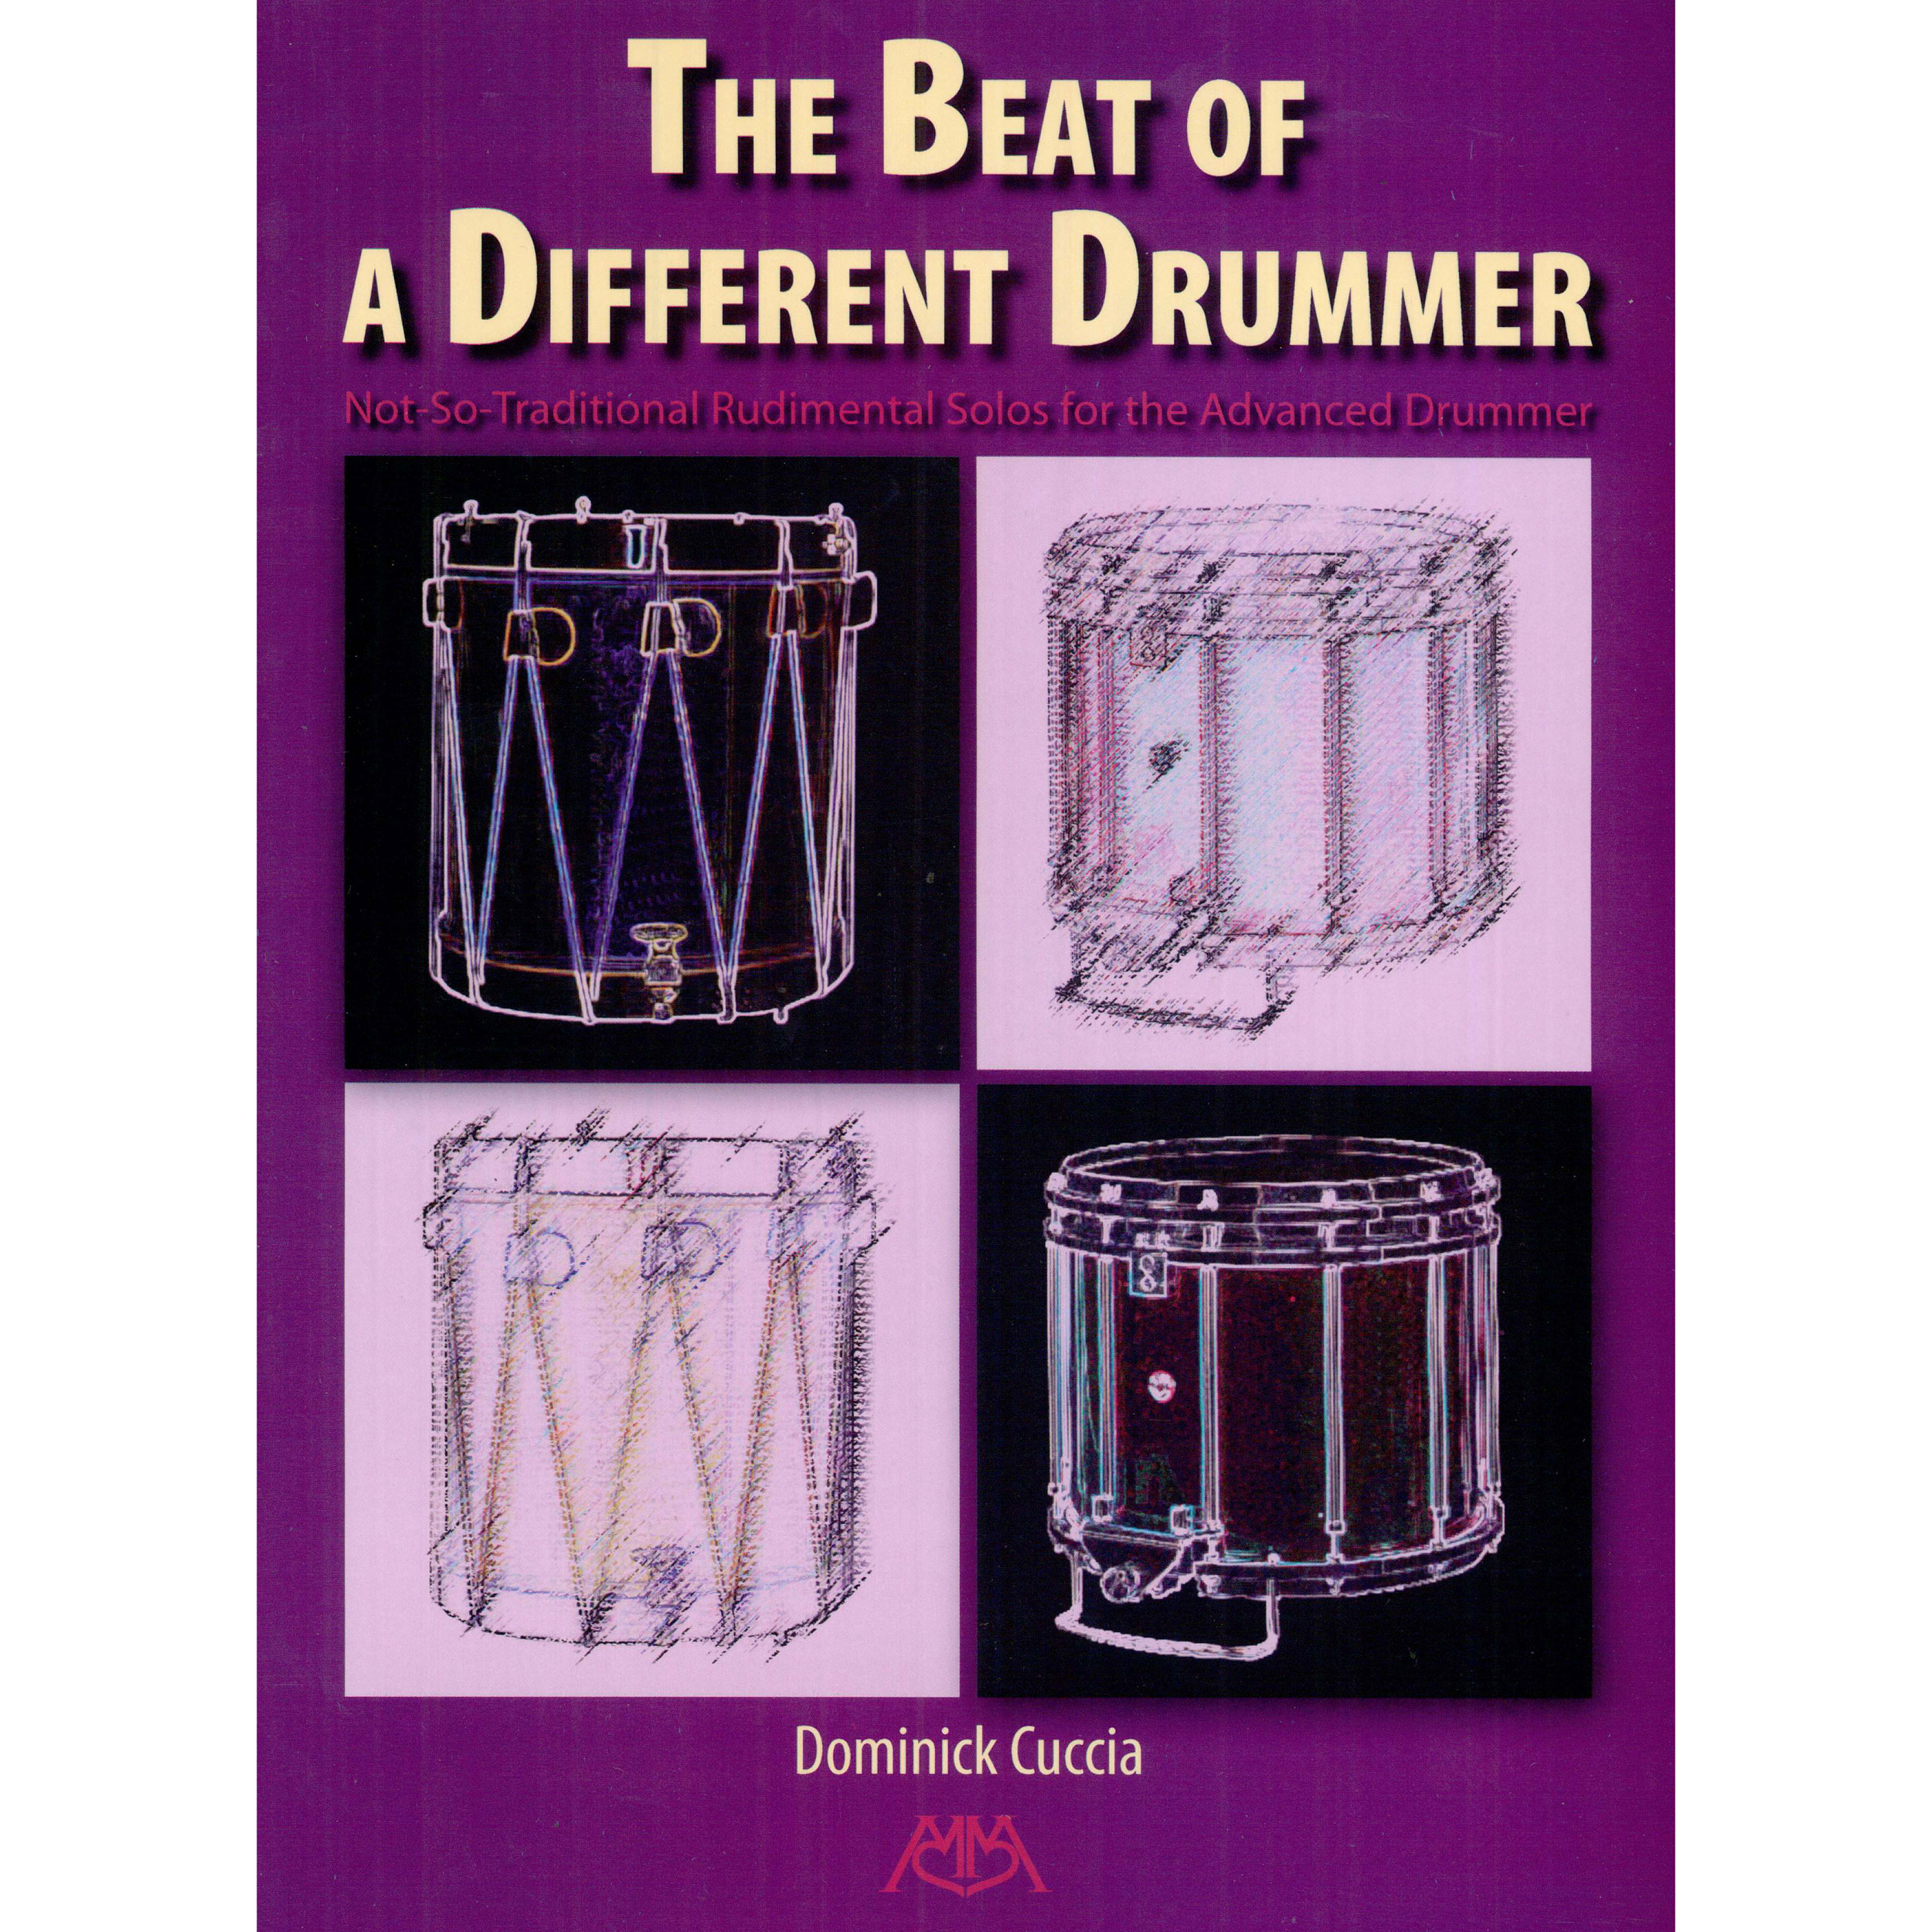 The Beat of a Different Drummer by Dominick Cuccia